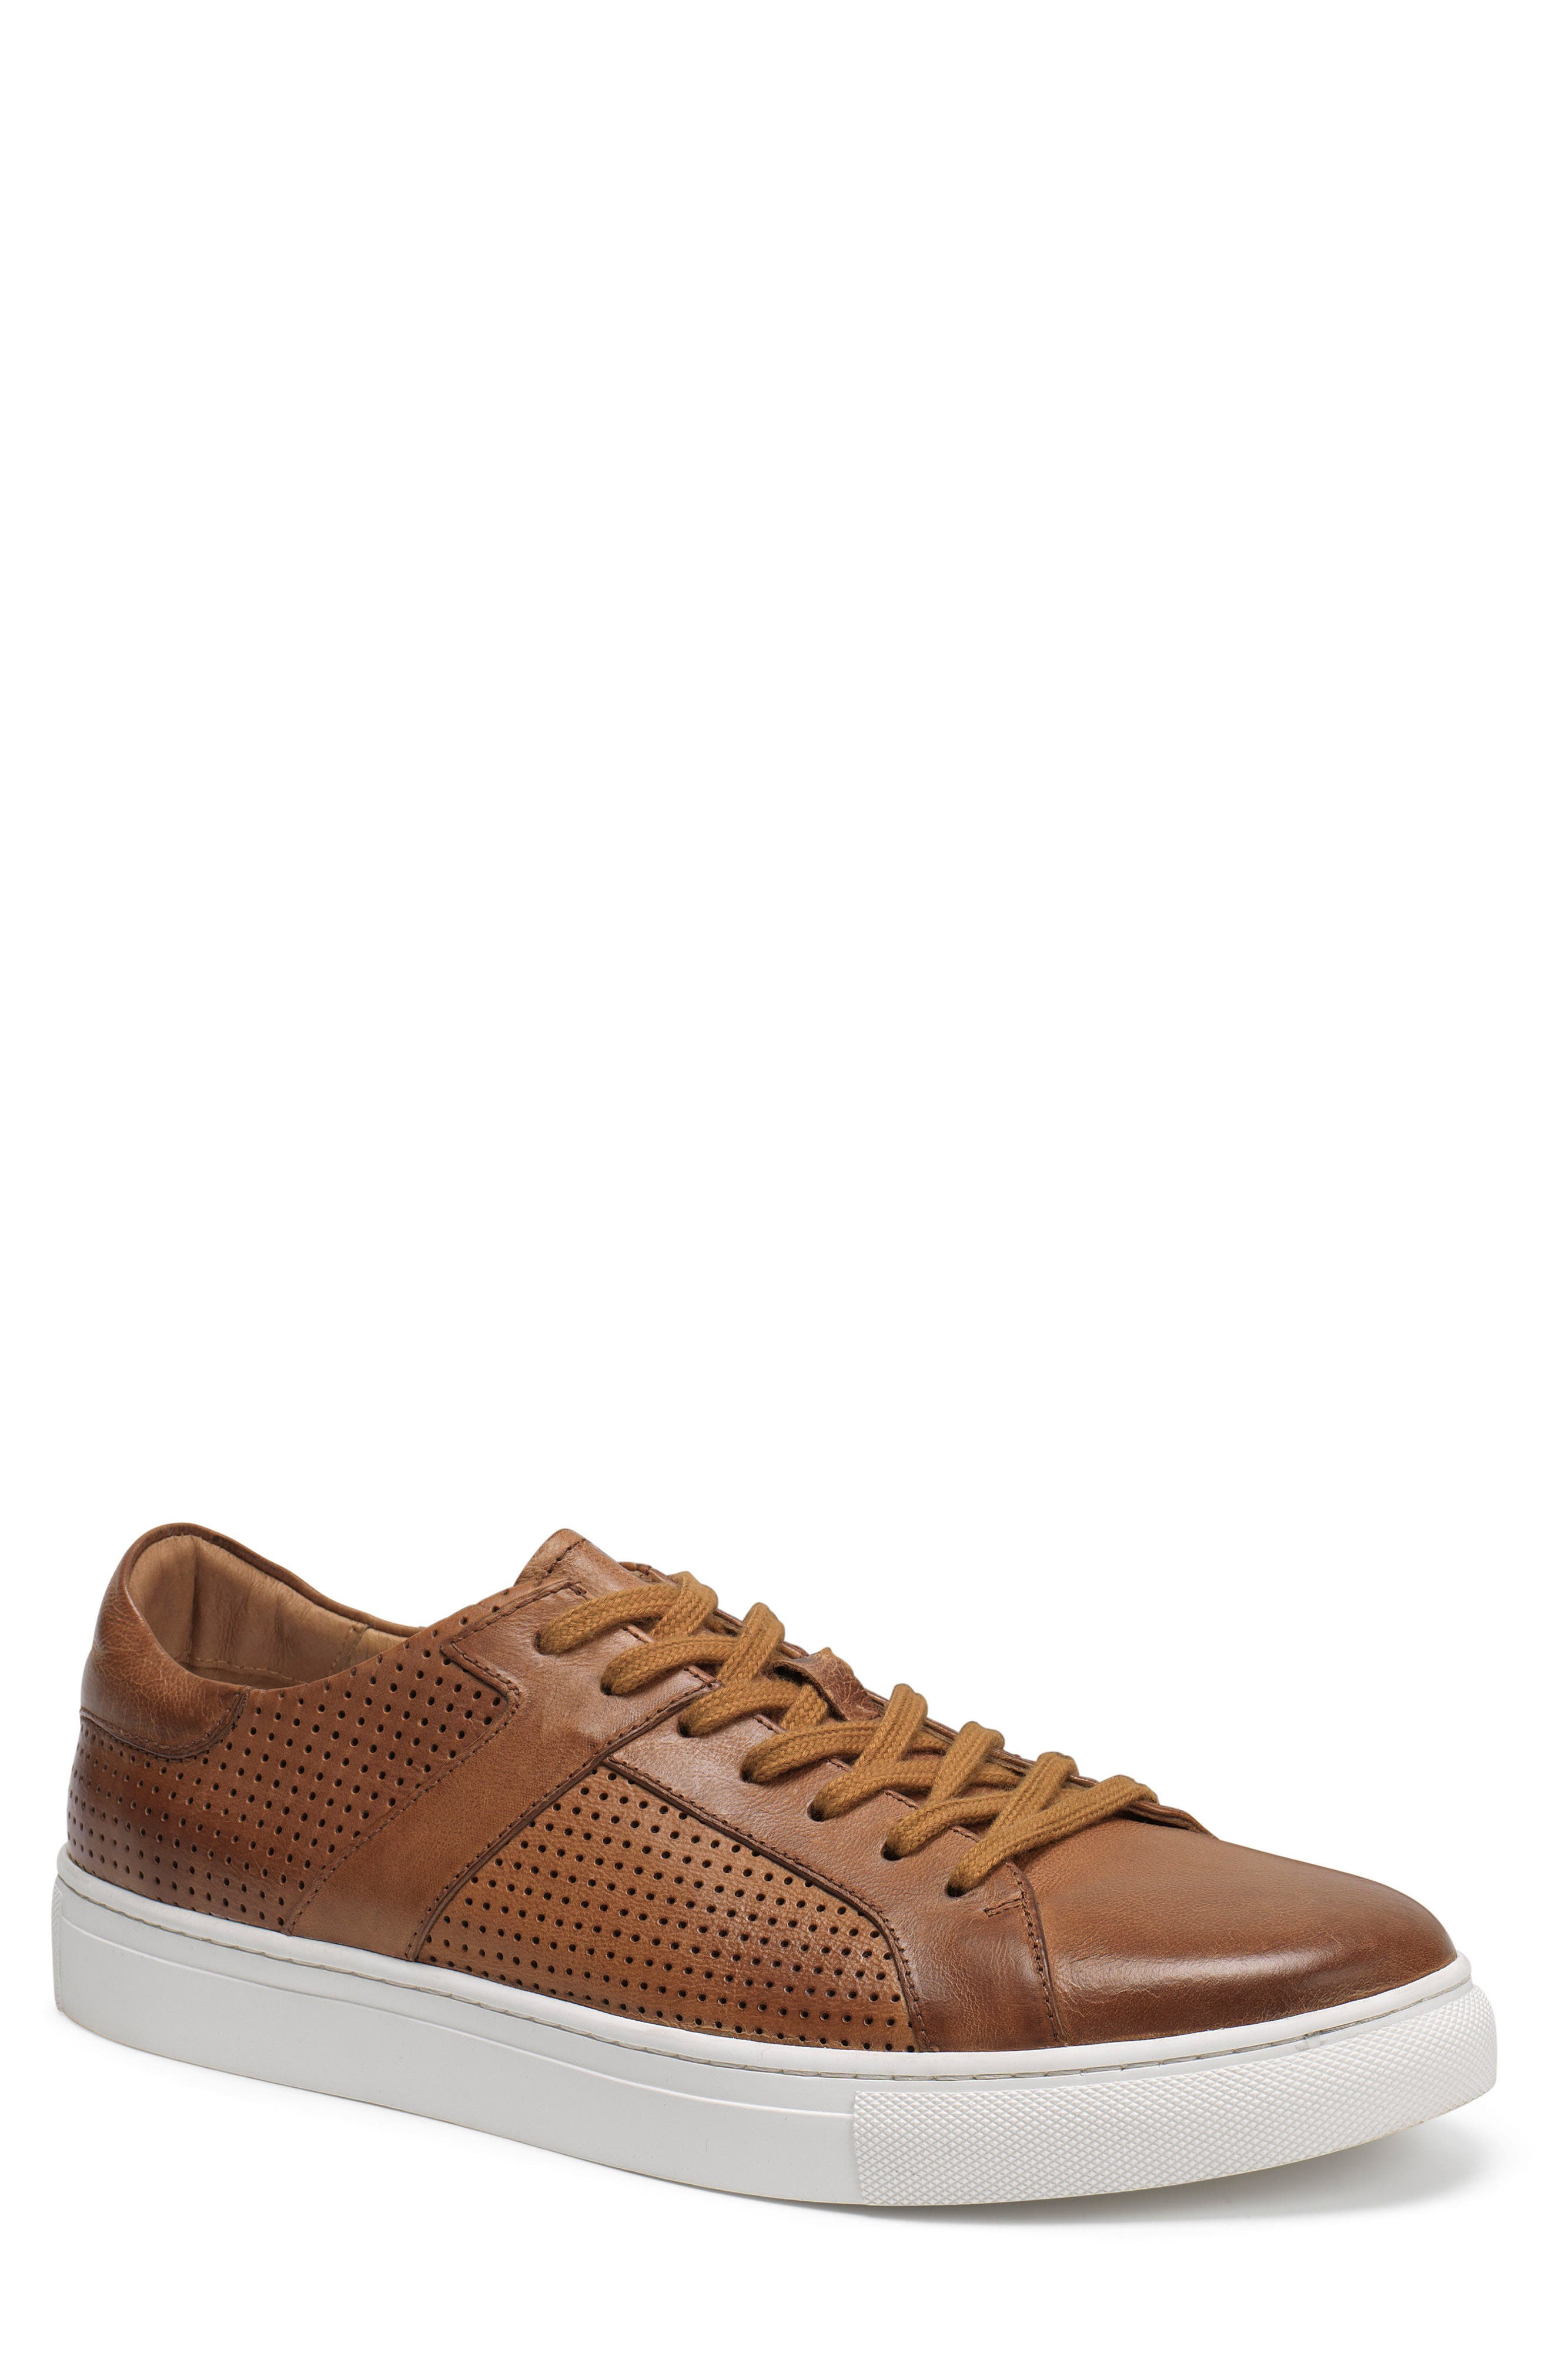 Aaron Sneaker,                         Main,                         color, TAN LEATHER